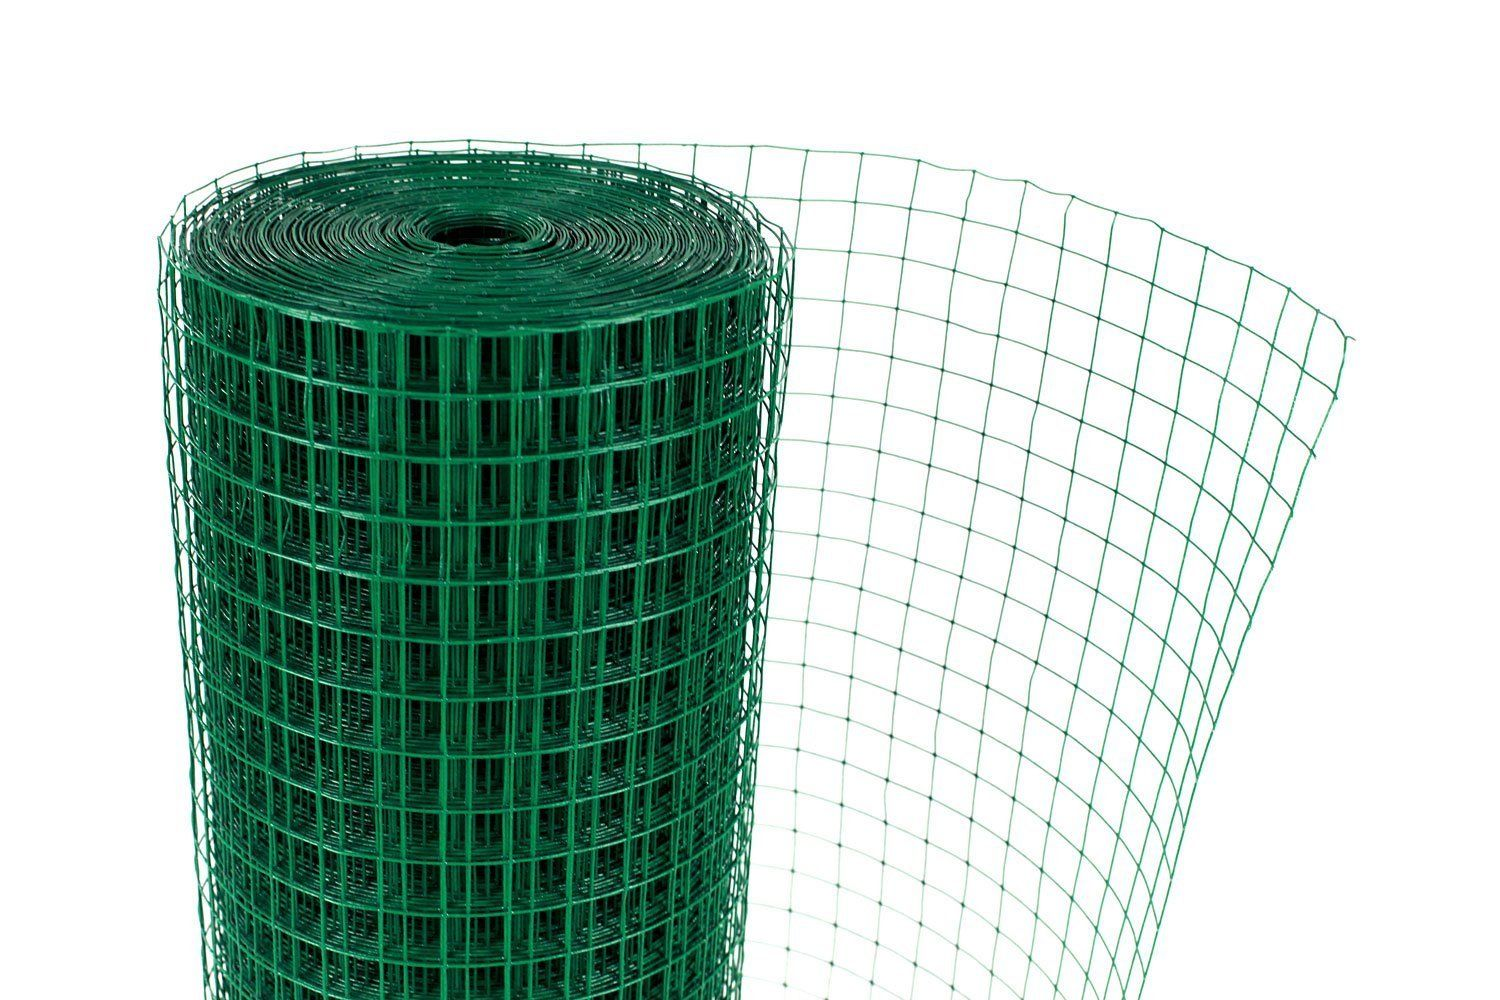 Green PVC Coated Welded Mesh Fence Wire For Garden Fencing Guard ...